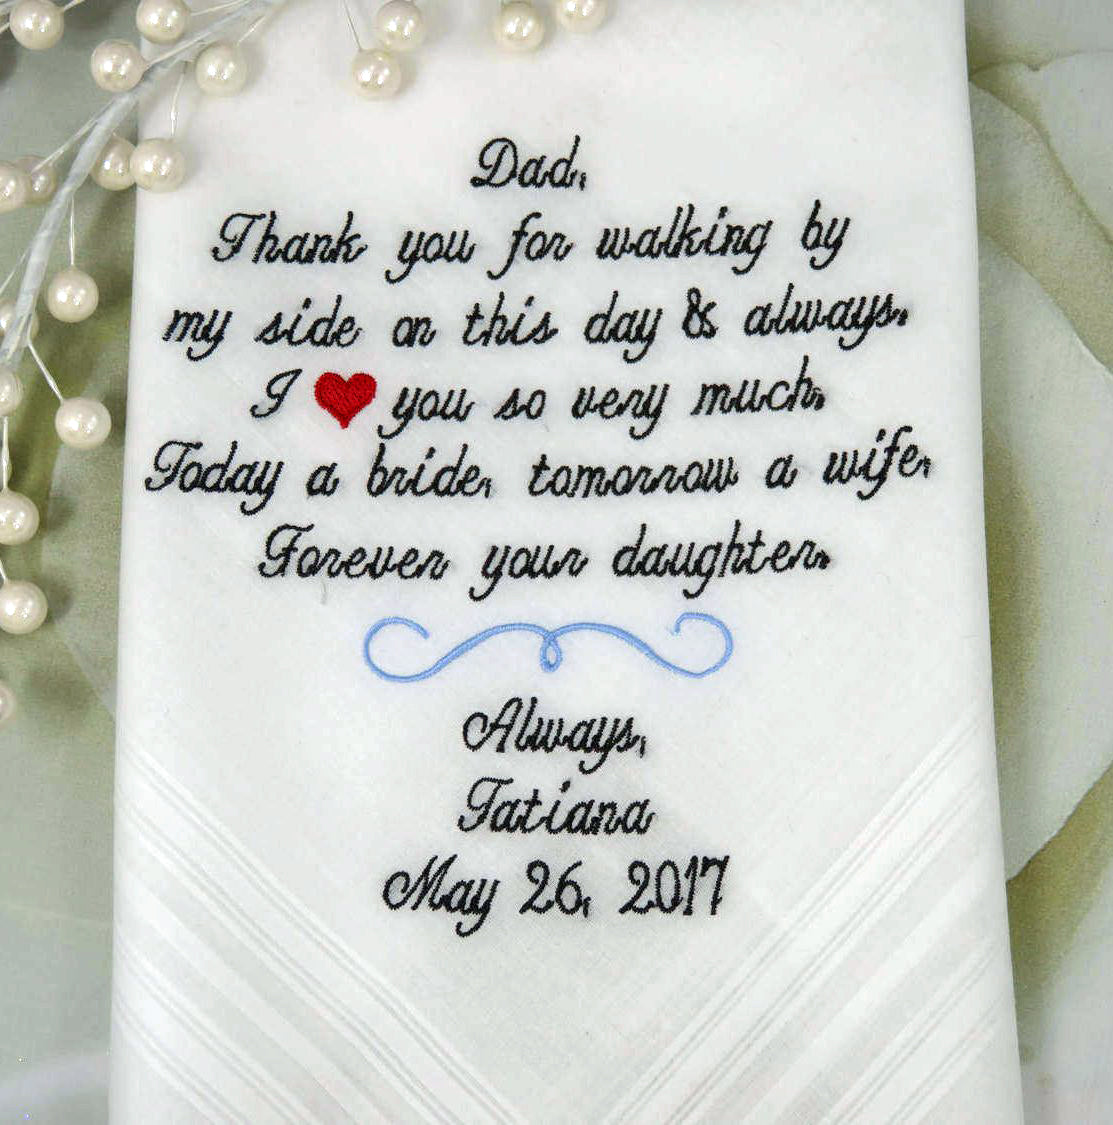 Father of the Bride Gift EMBROIDERED Personalized Wedding Handkerchief Wedding Gift For Dad From The Bride You may choose up to 40 words.